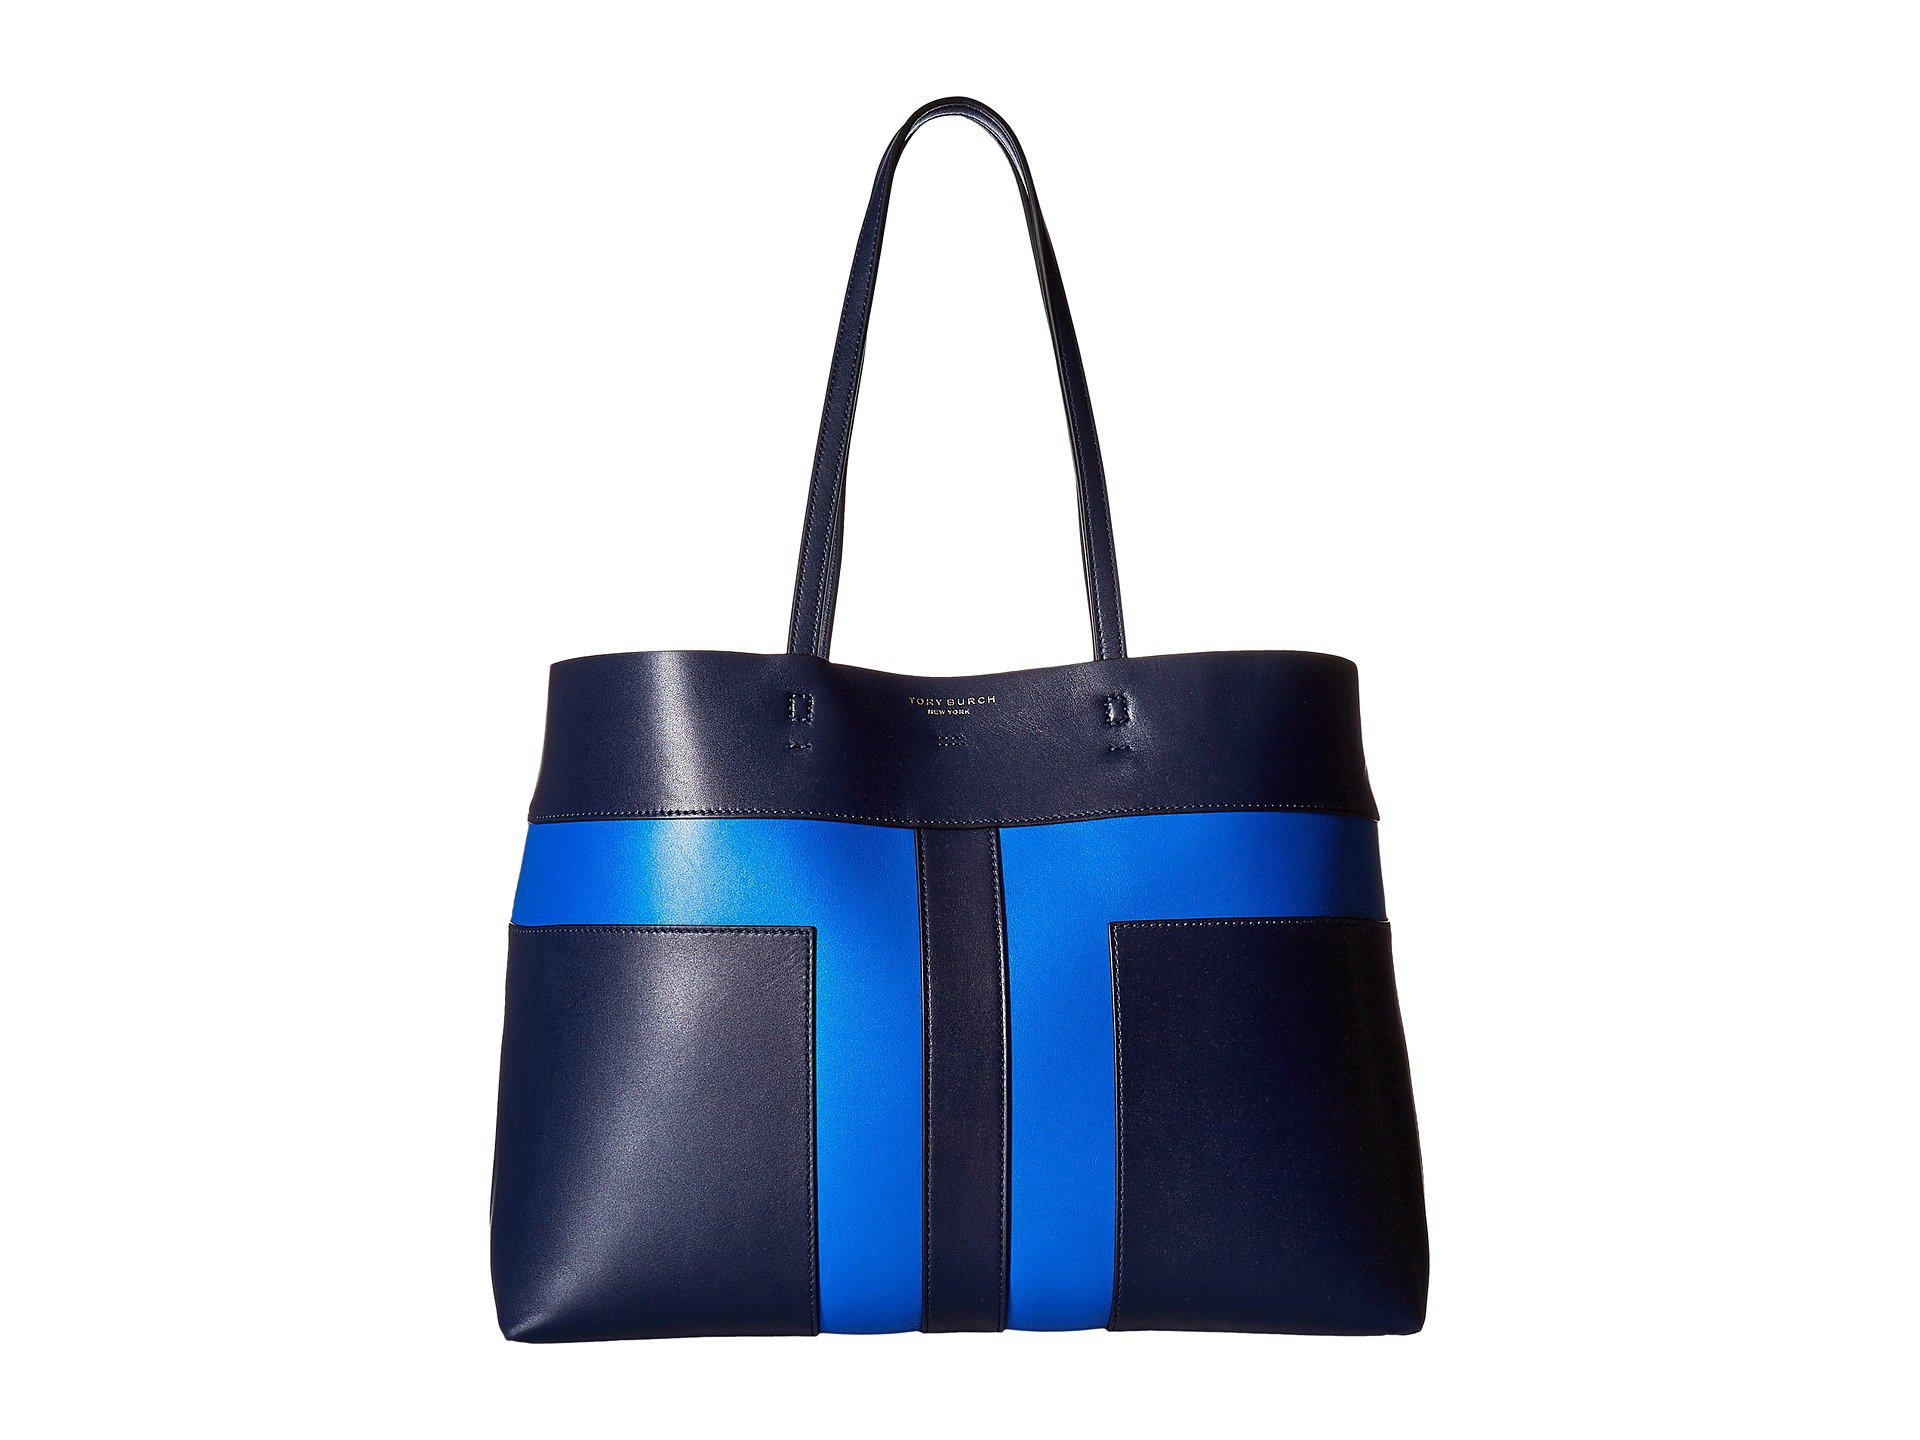 984c4c37f064 Lyst - Tory Burch Block-t Pieced Leather Tote in Blue